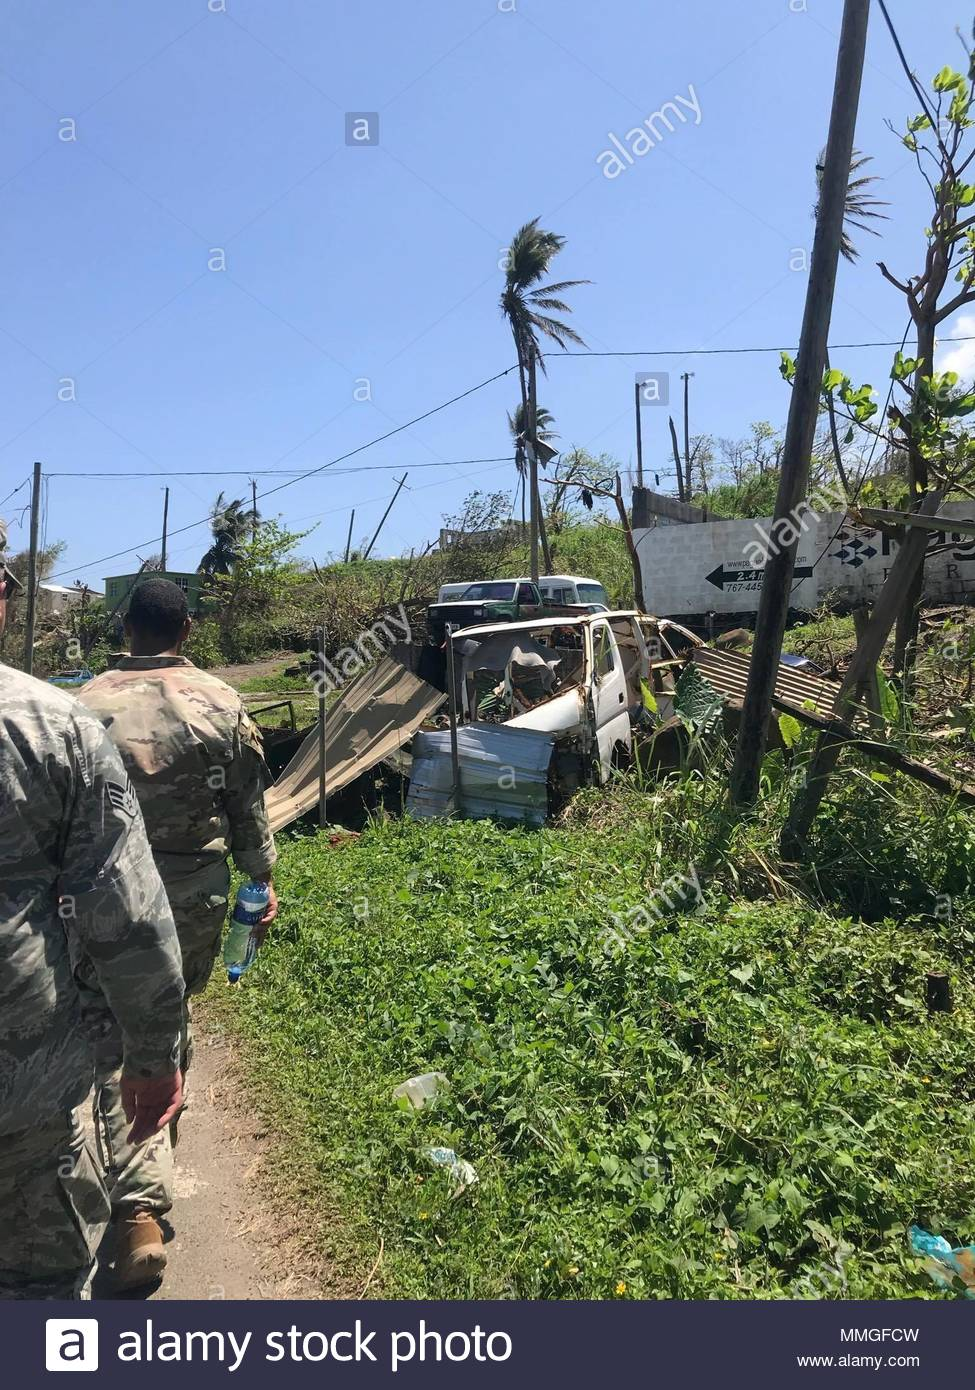 U.S. service members survey damage, Oct. 9, 2017 on the Caribbean island of Dominica. The island was devastated by Hurricane Maria, a Category 5 storm that made landfall Sept. 19, 2017, spurring support from the Joint Base Lewis-McChord community, as well as military installations across the globe. (Courtesy Photo) - Stock Image